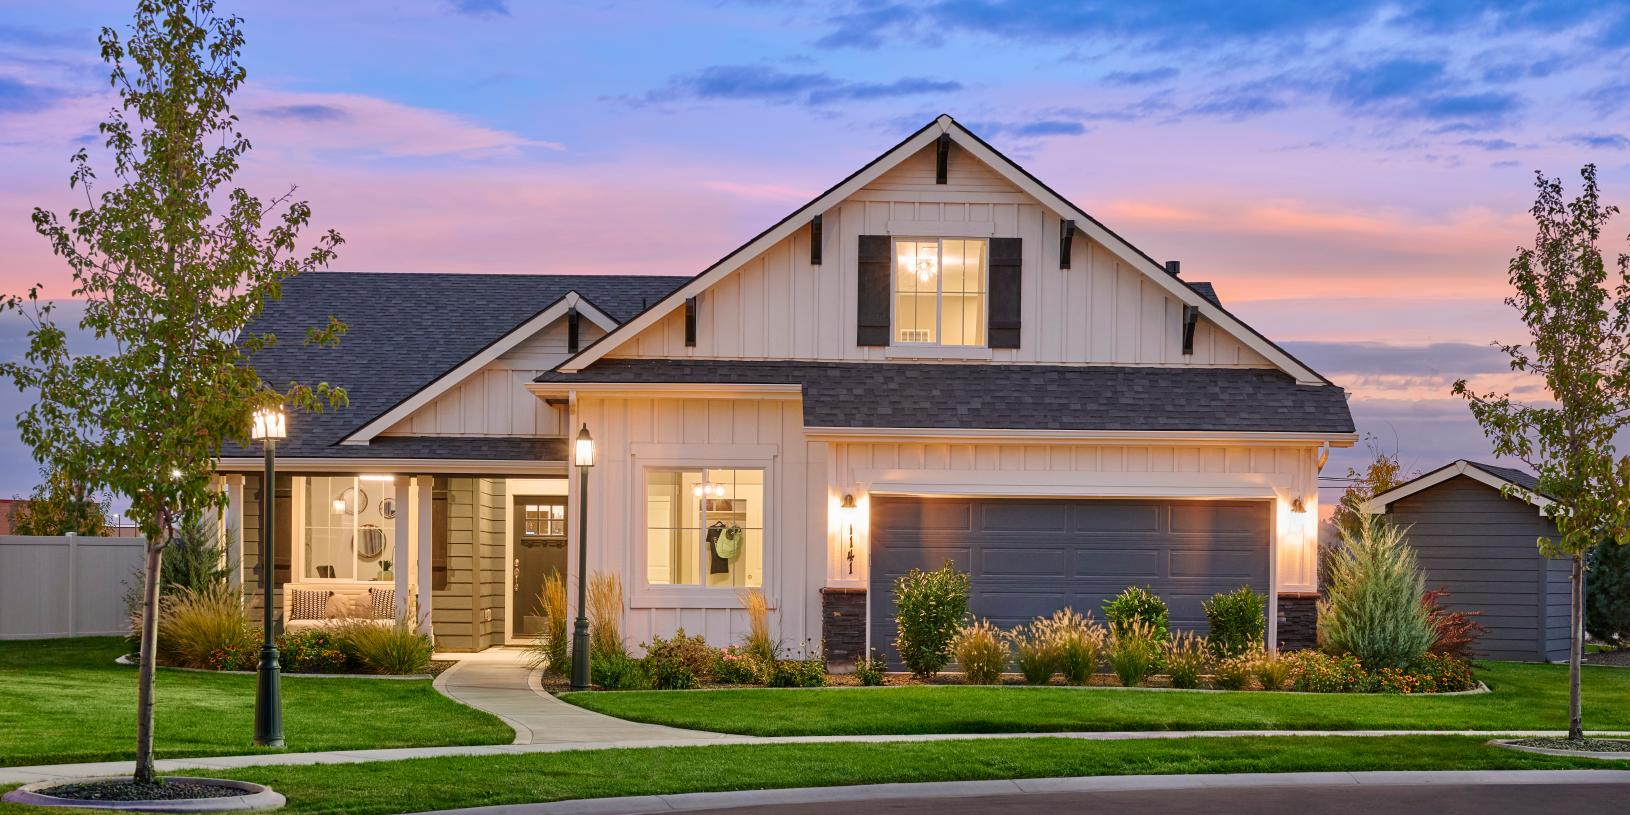 Superior exterior and interior selections